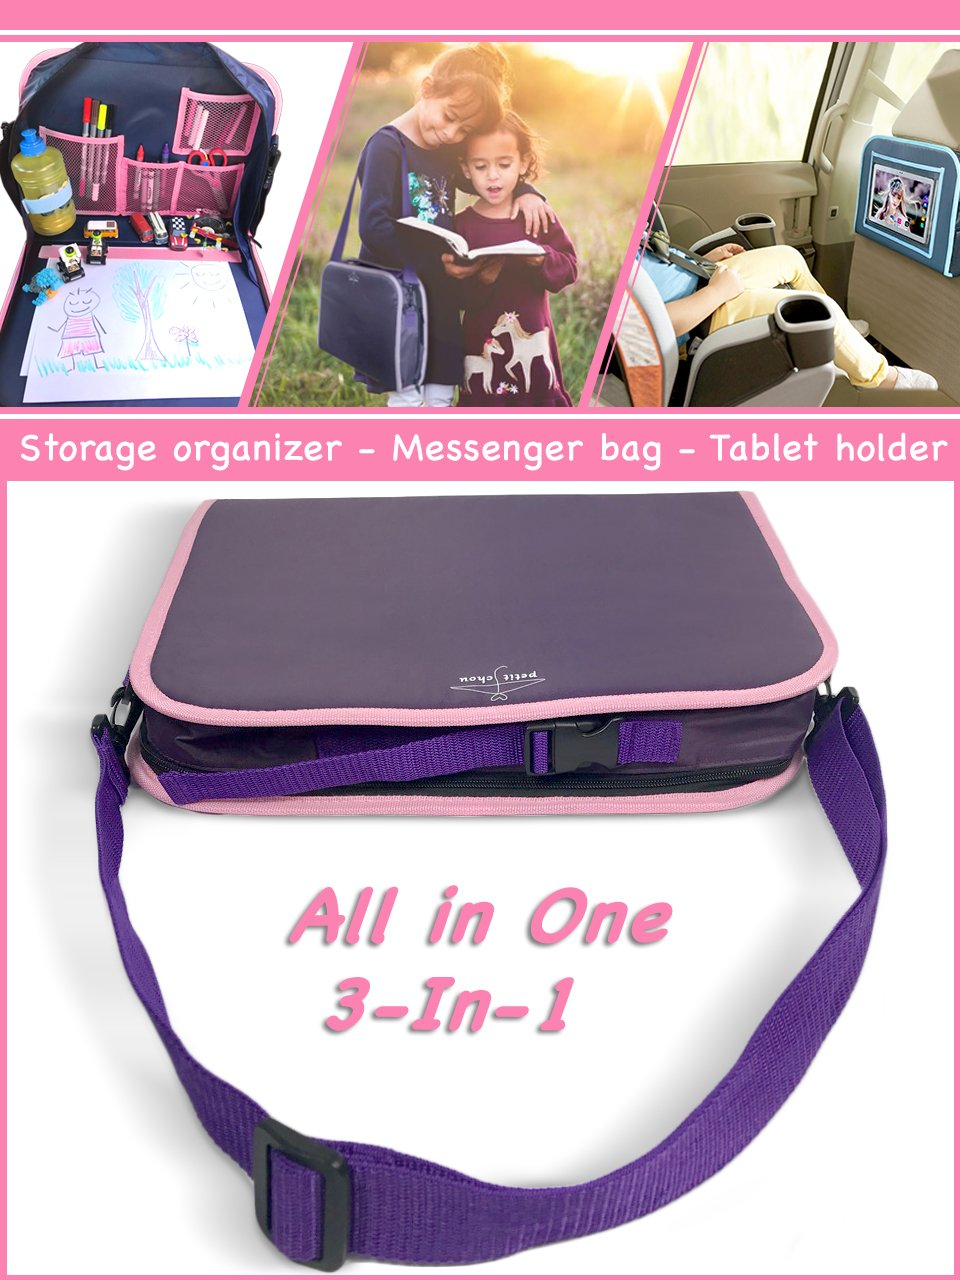 Car Seat Kids Travel Tray (in Purple) with Solid Surface | Messenger Bag for Children, Portable Drawing Table for Toddler | Toys and Snacks Storage Organizer, Tablet Holder, Activity Tray, Play Tray